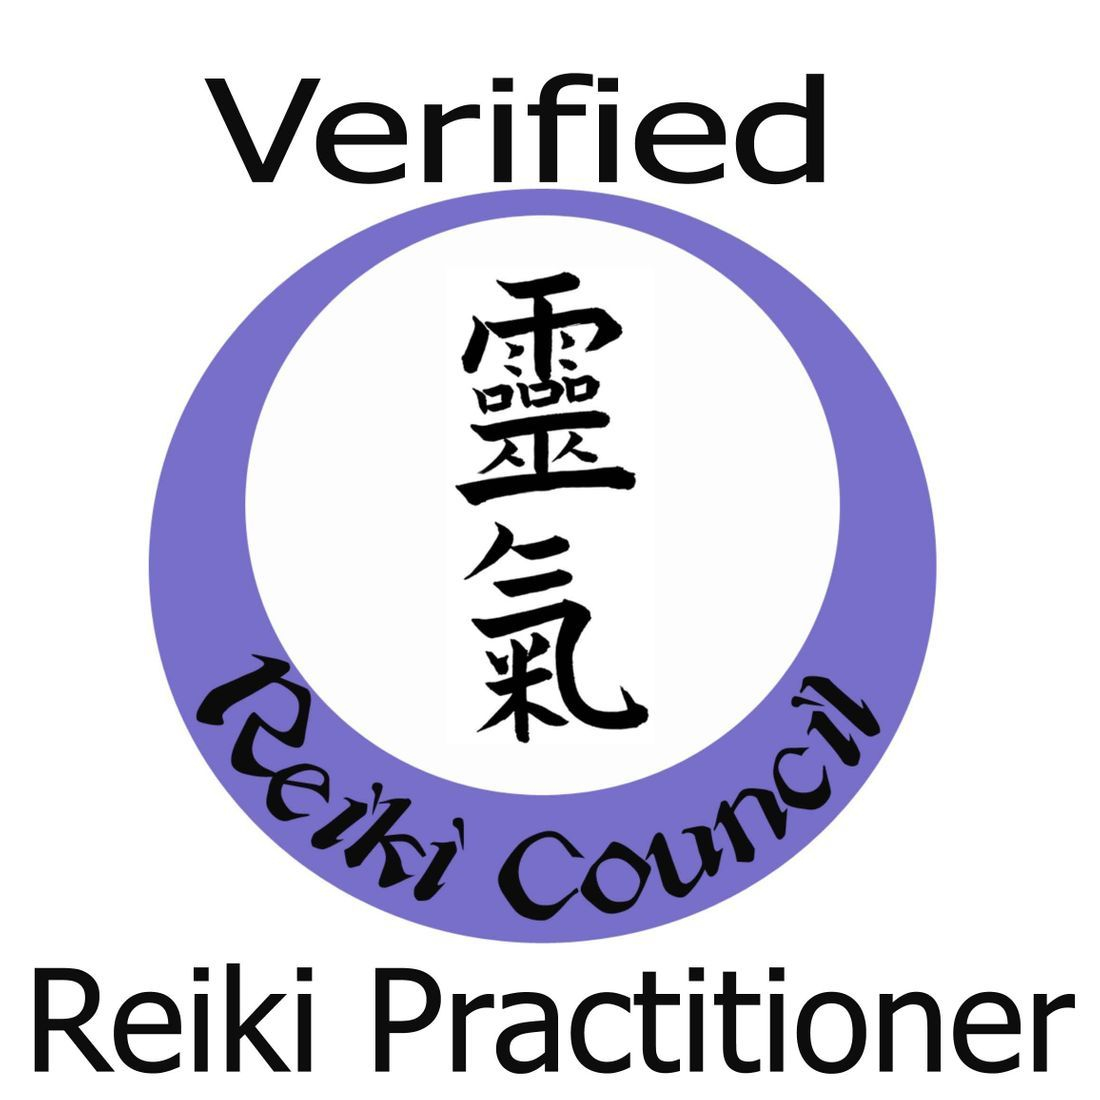 Time for Me - Verified Reiki Practitioner